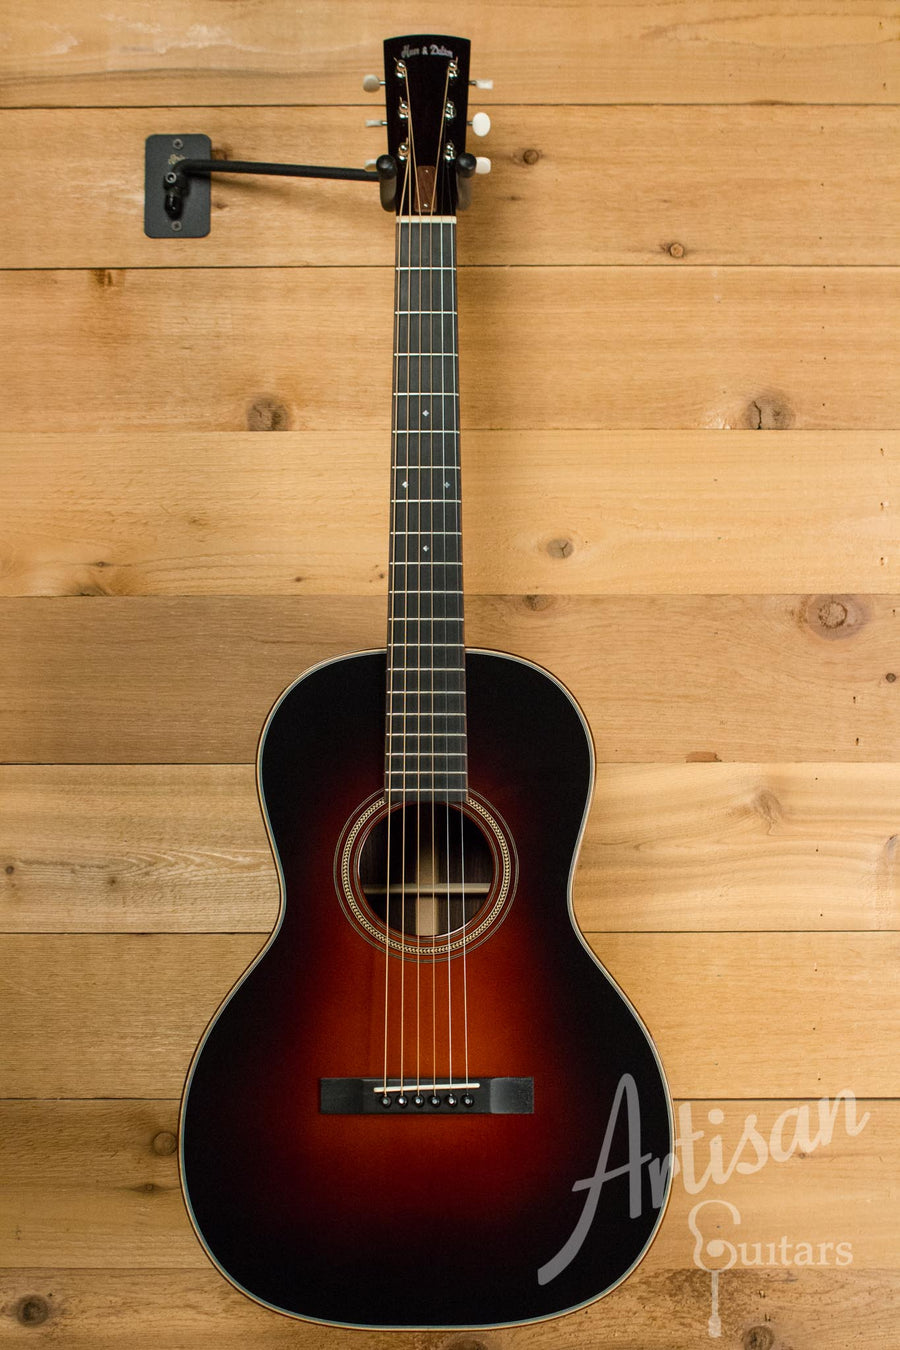 Huss and Dalton 00 Guitar Engelmann Spruce and Indian Rosewood with Sunburst Pre-Owned 2009 ID-10575 - Artisan Guitars